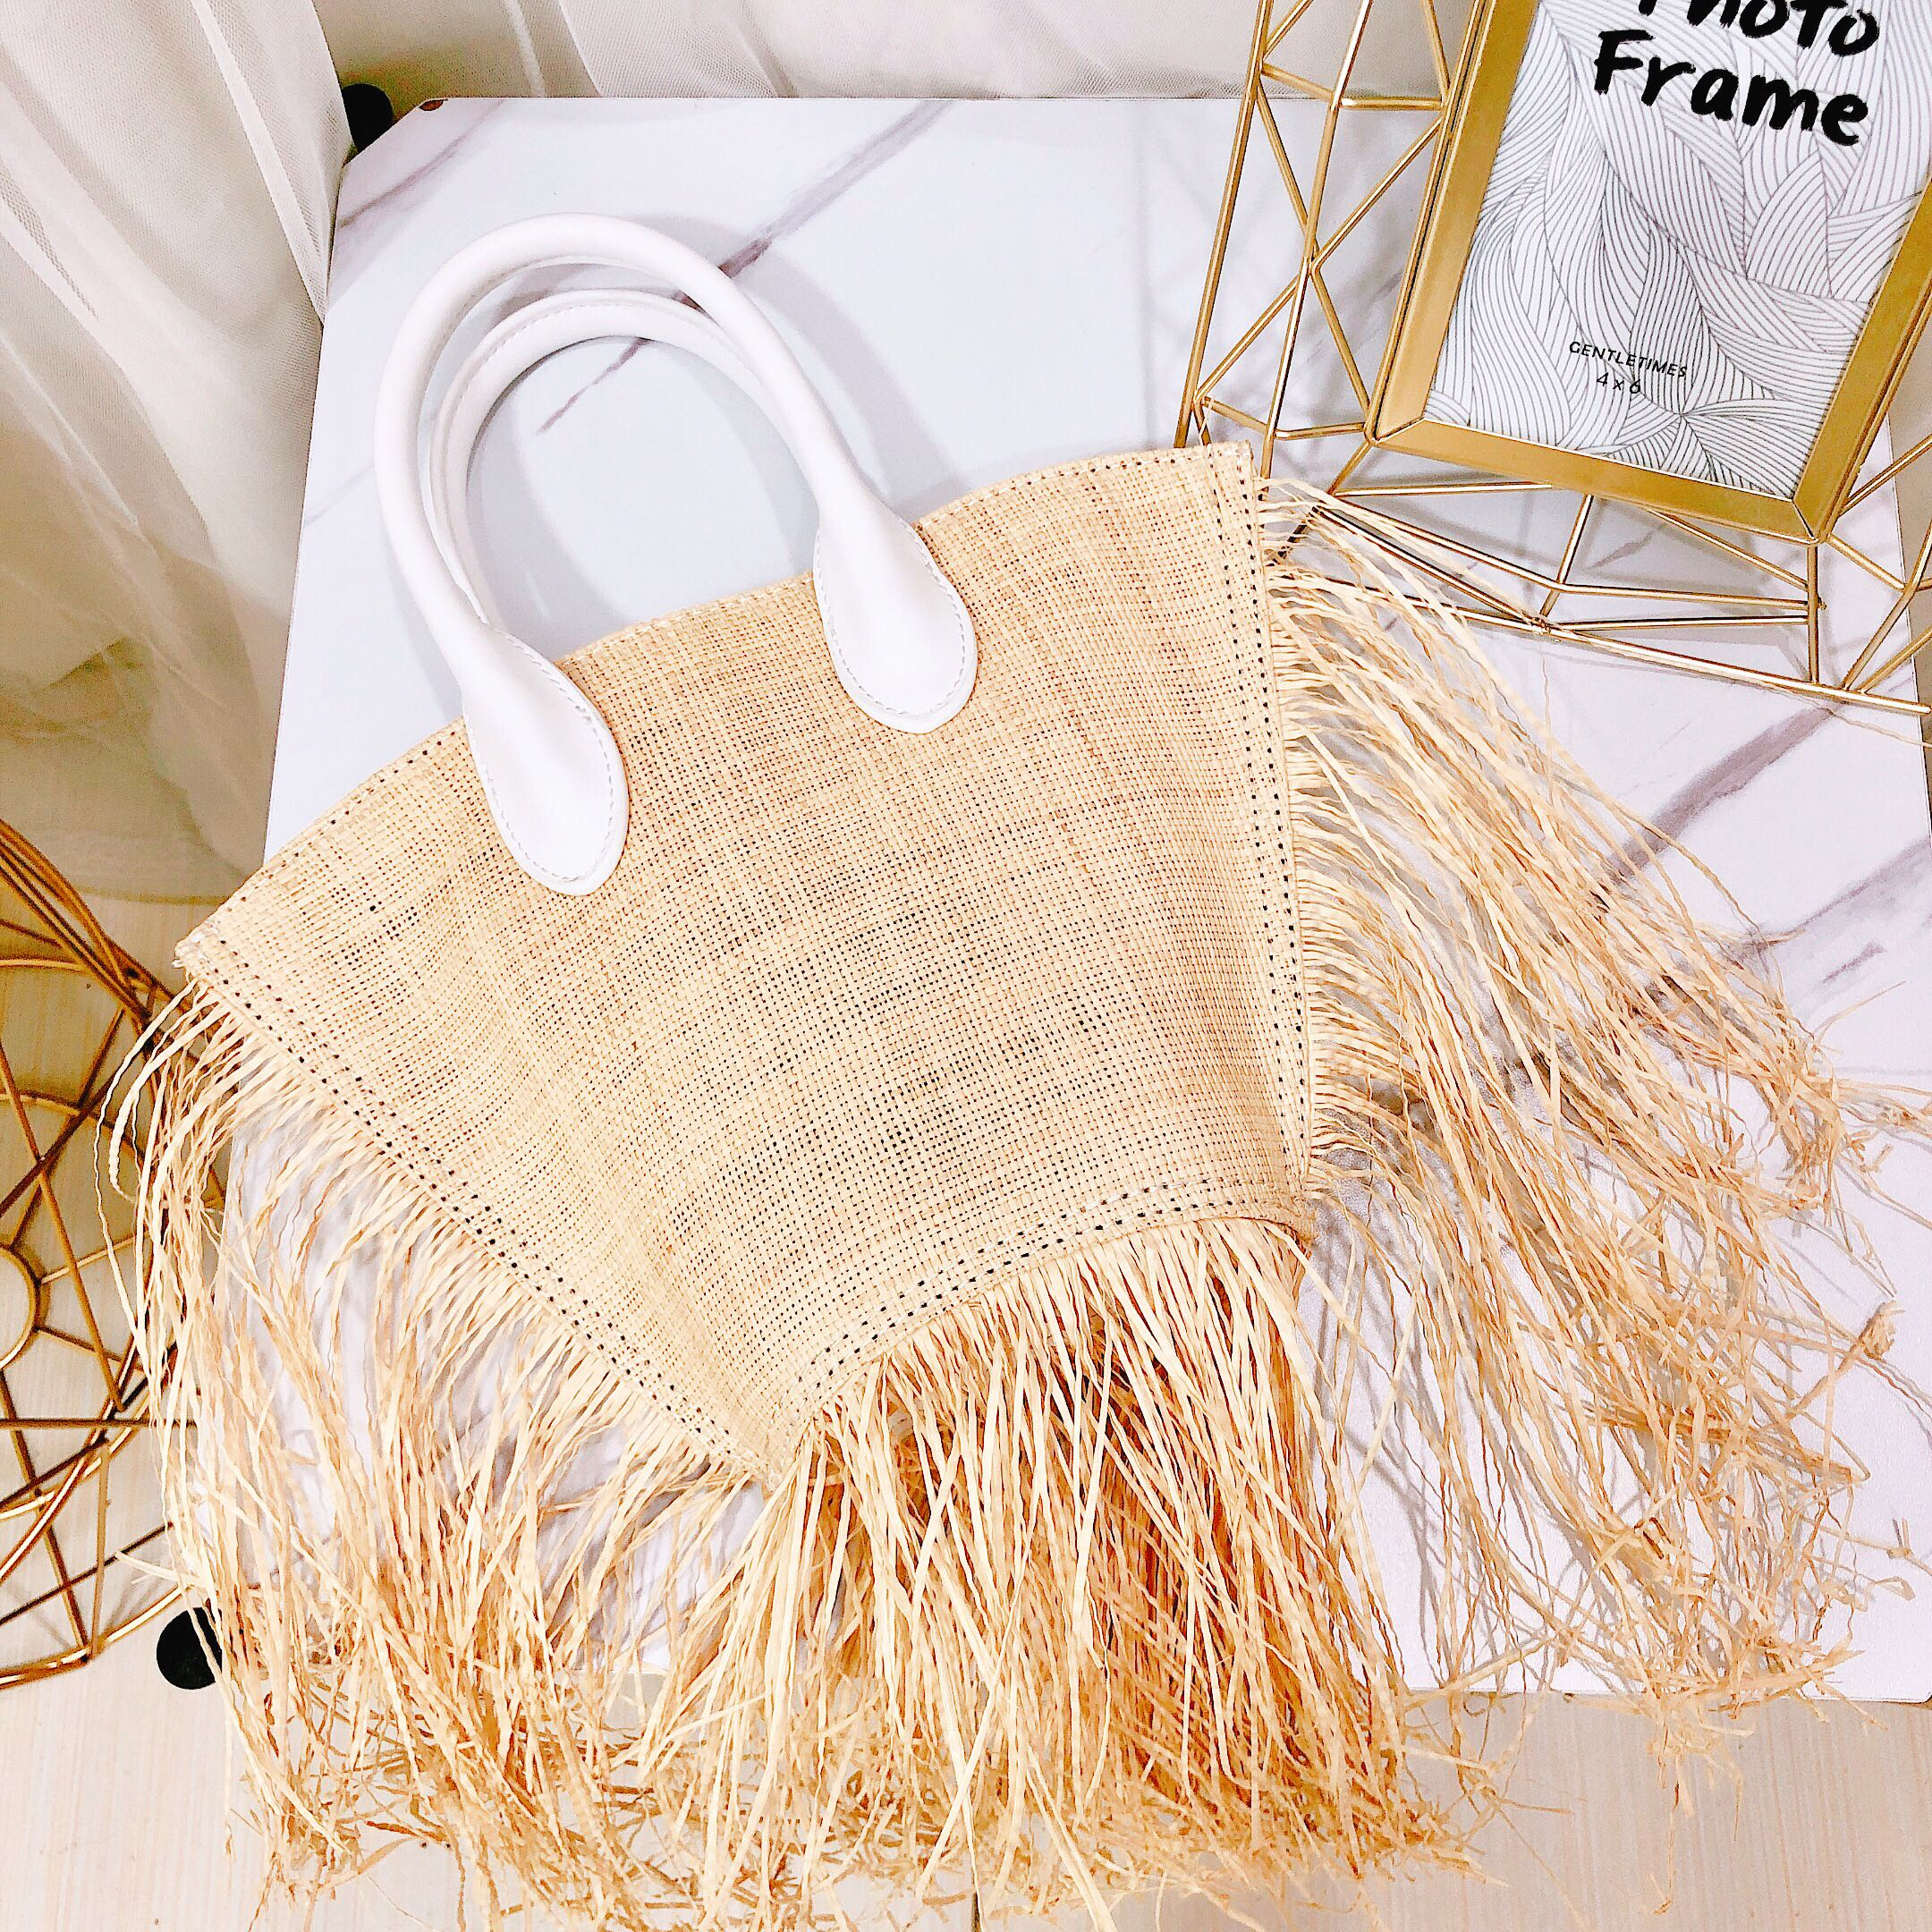 2019 Fashion New tassel Handbag High quality Straw bag Women beach woven bag Tote fringed beach woven Shoulder Travel bag-in Shoulder Bags from Luggage & Bags    3